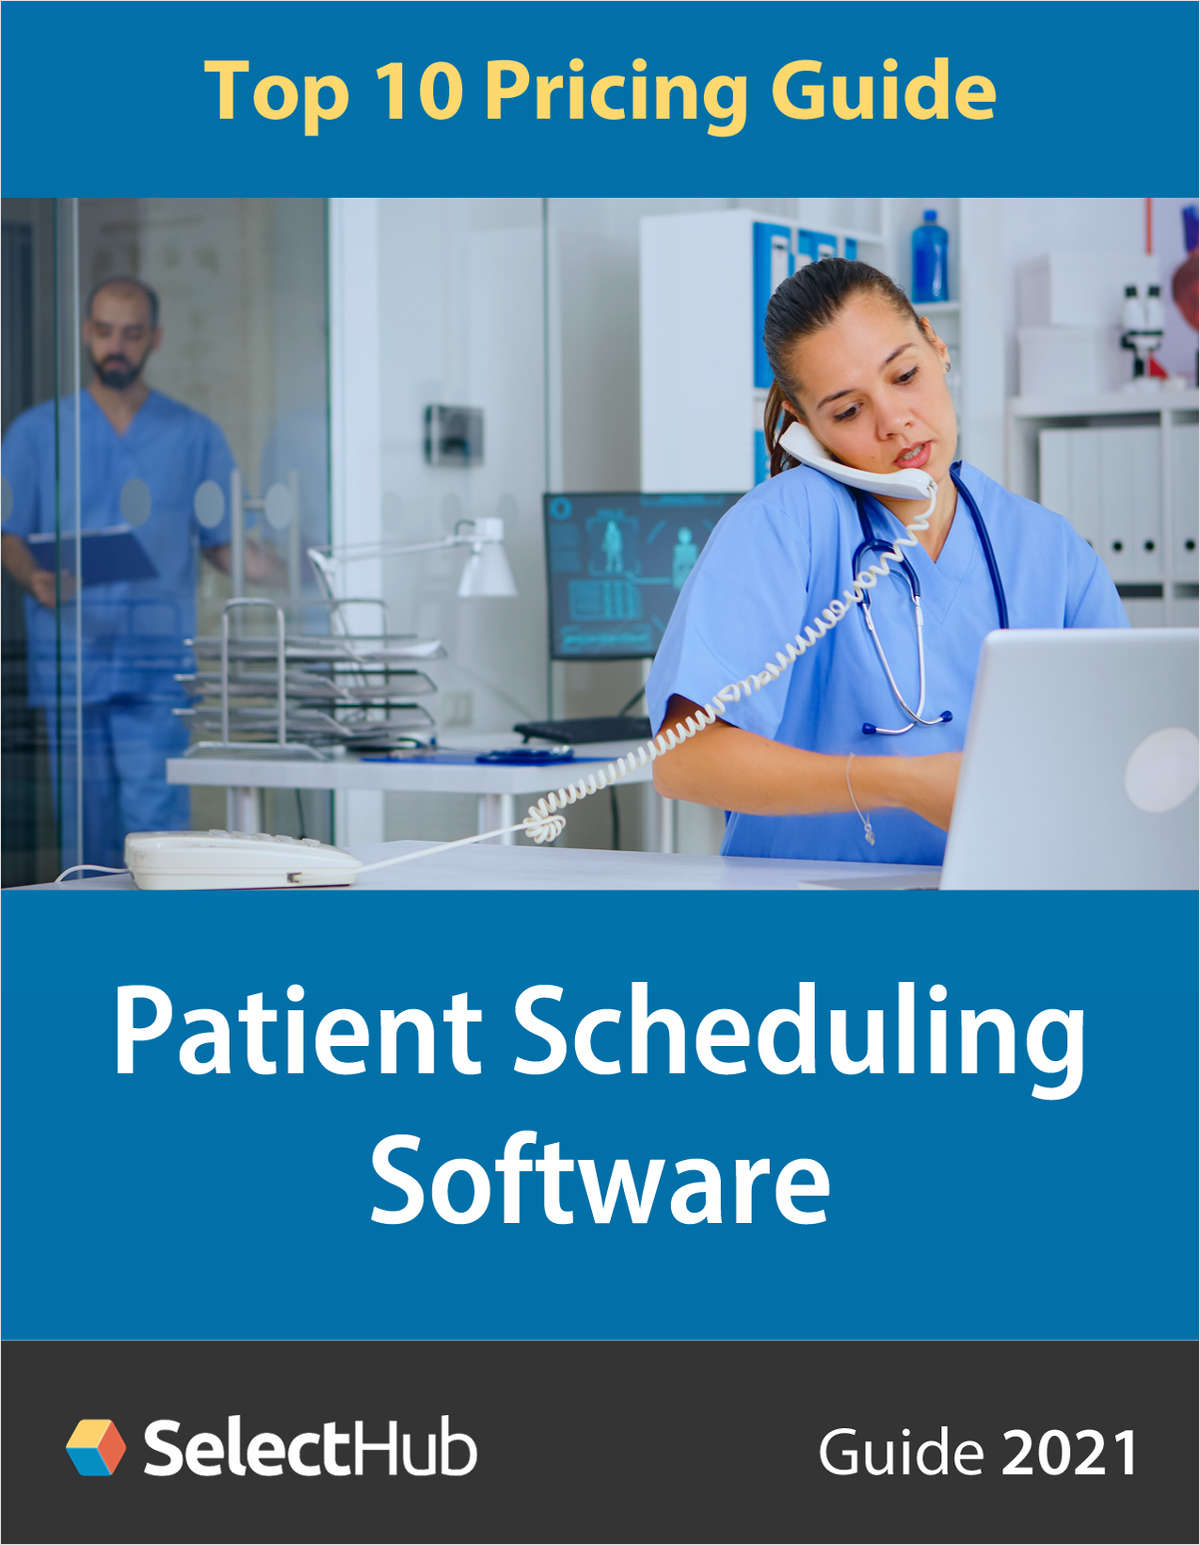 Patient Scheduling Software: Top 10 Pricing Guide 2021